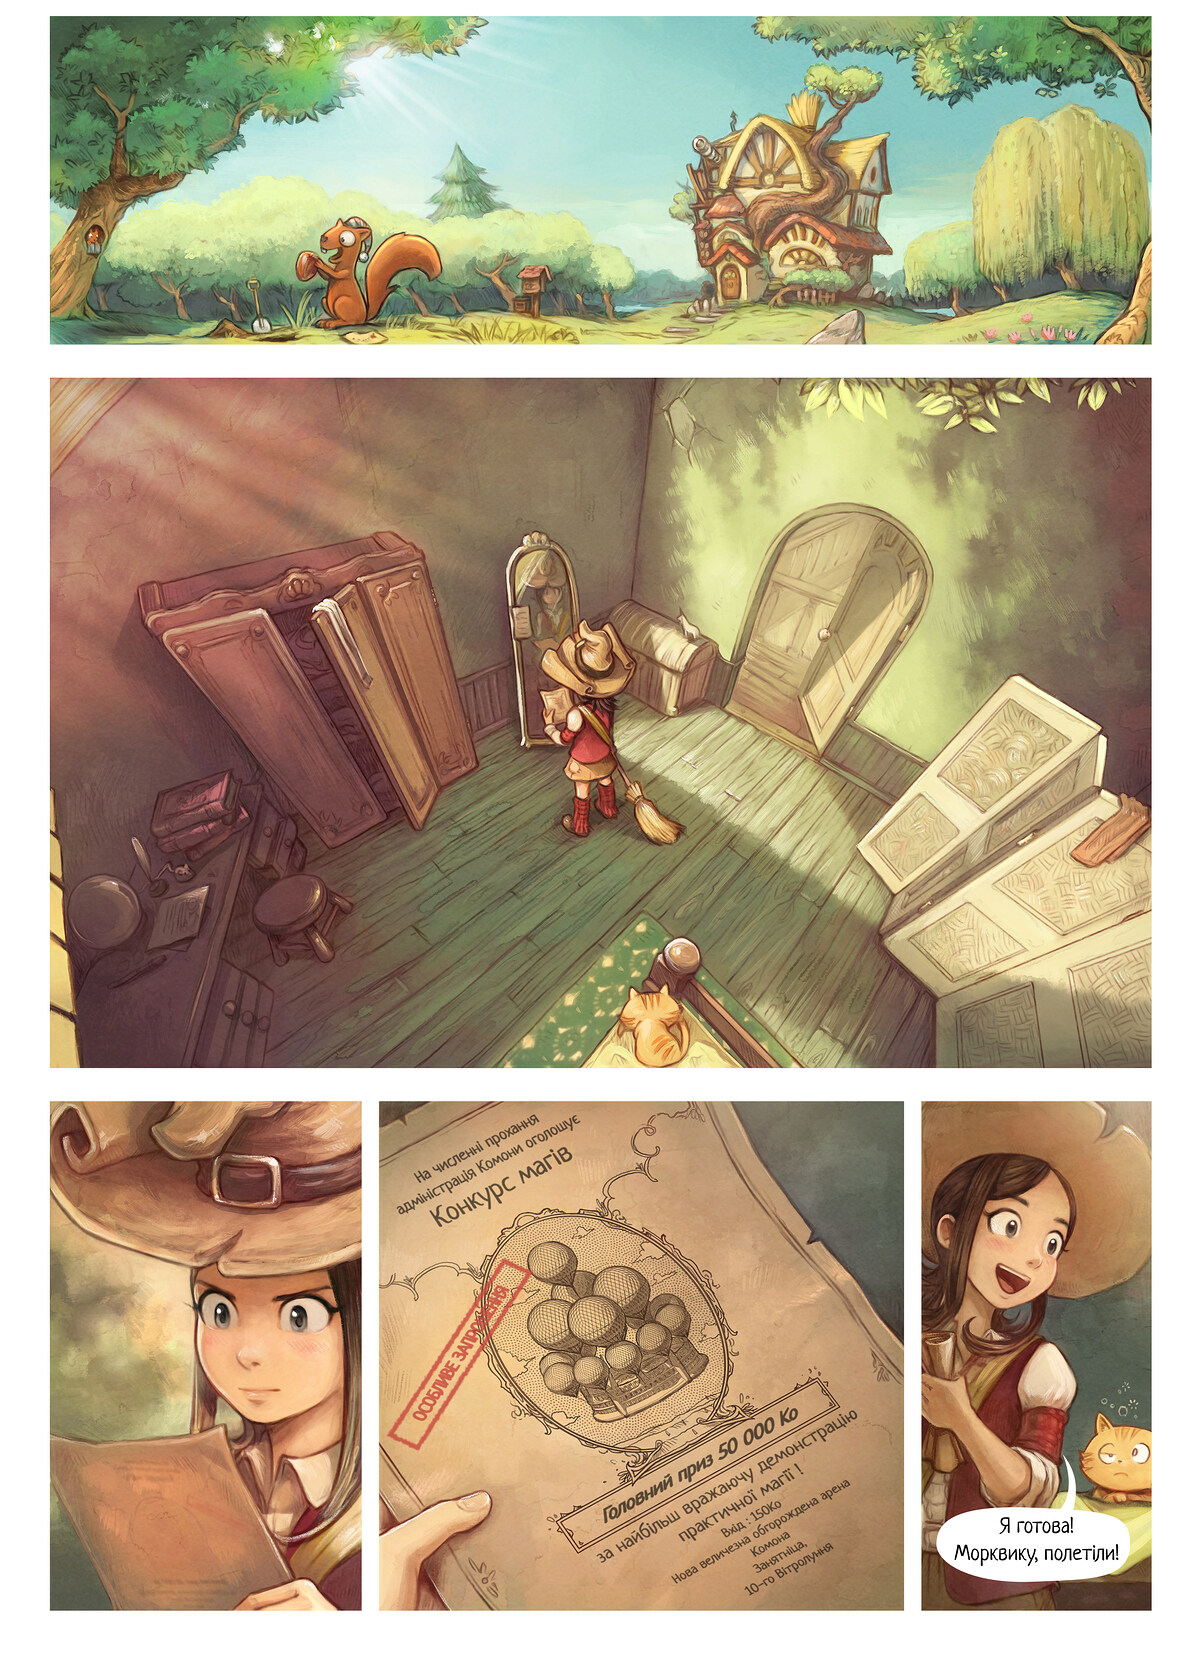 A webcomic page of Pepper&Carrot, епізод 21 [uk], стор. 1